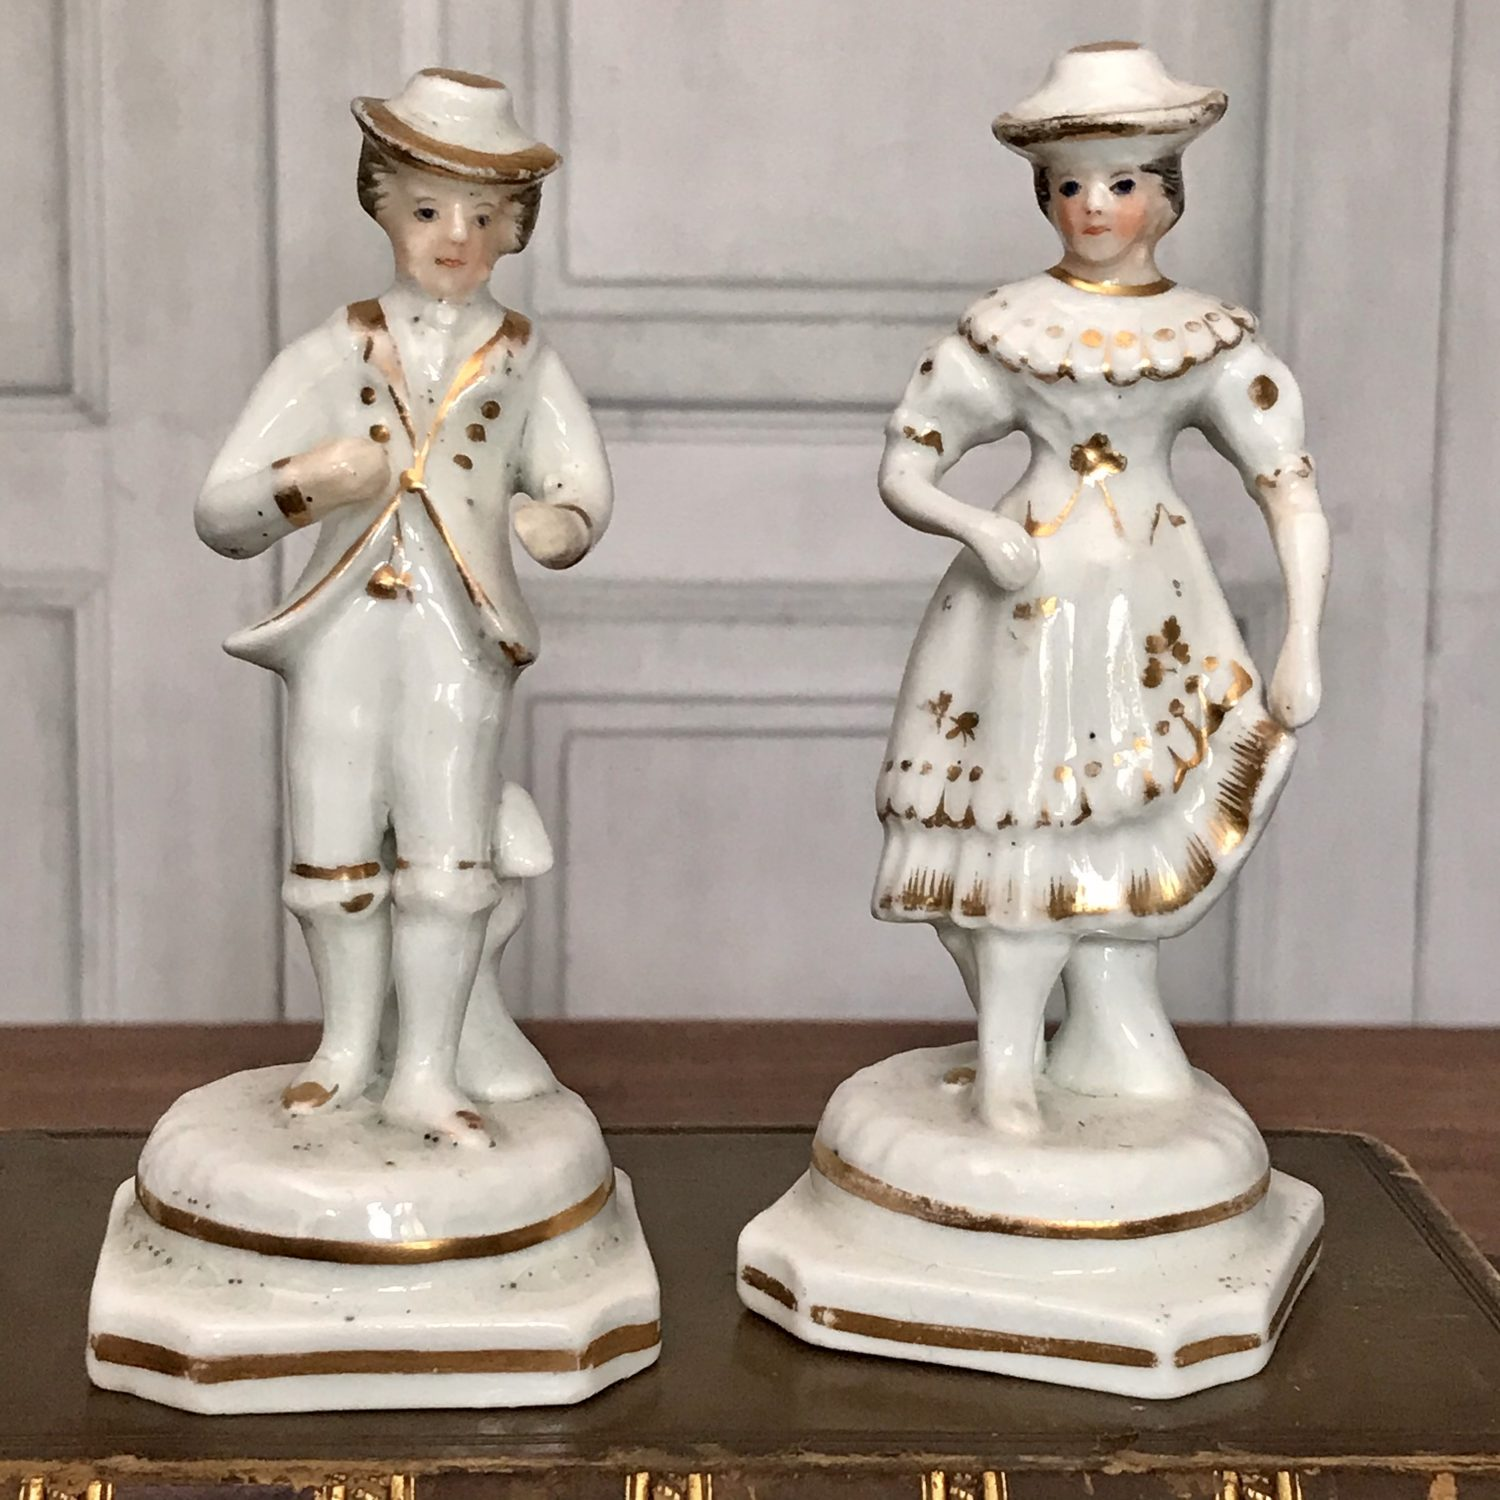 Pair of Miniature Staffordshire Figures of Dancers.